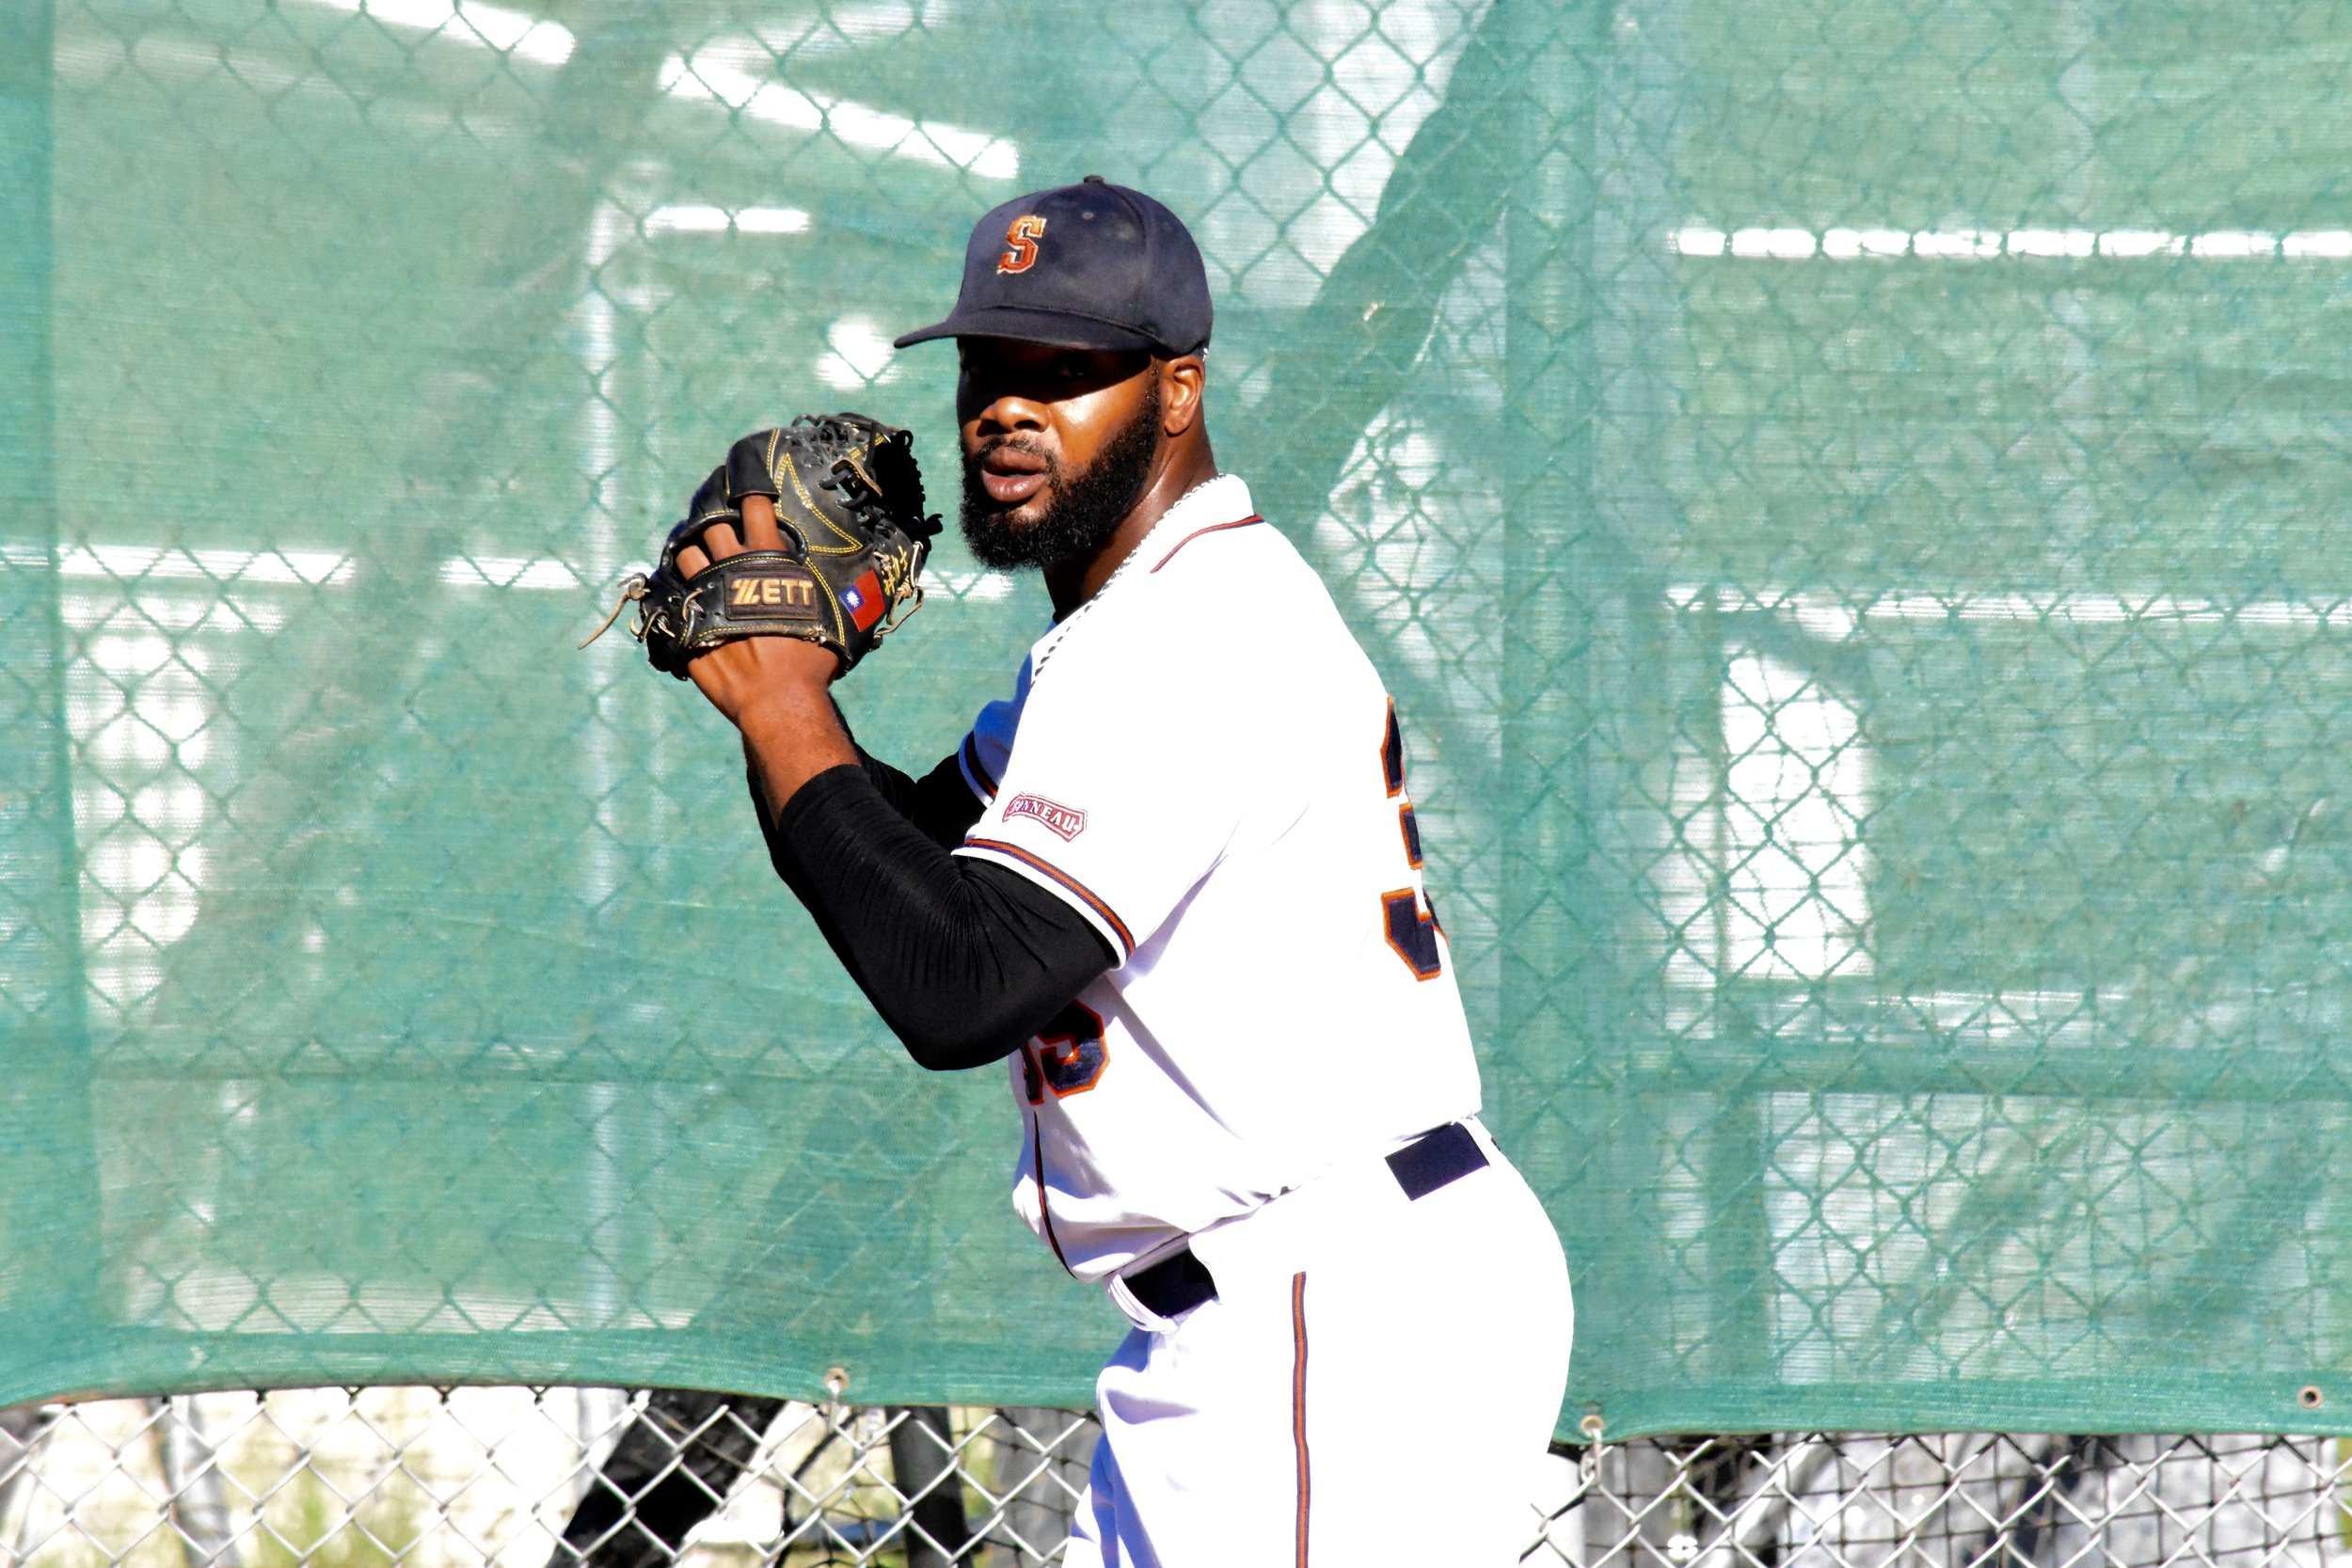 Ty'Relle Harris throws his first career complete game to lead the Sonoma Stompers to victory on Saturday against the San Rafael Pacifics in Sonoma. (James W. Toy III / Sonoma Stompers)